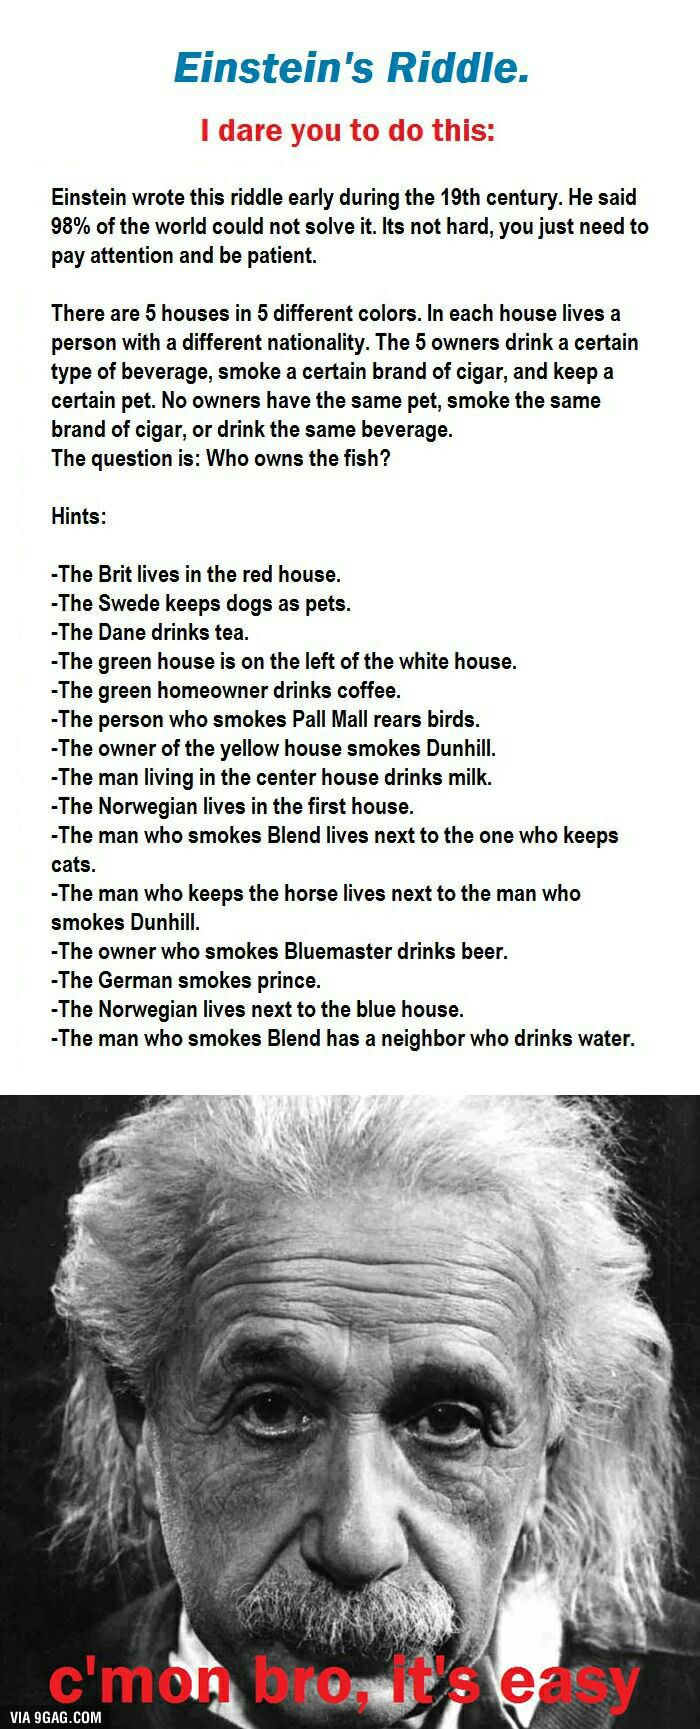 The types of riddles